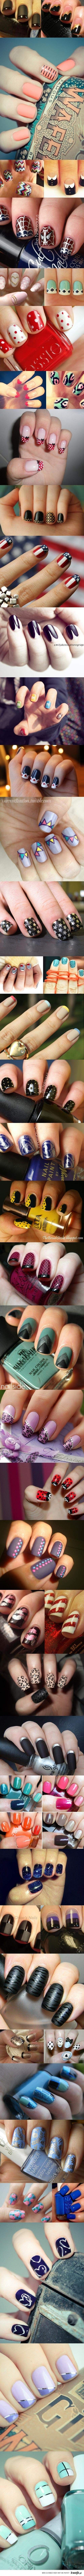 CUTE nails all in one place!